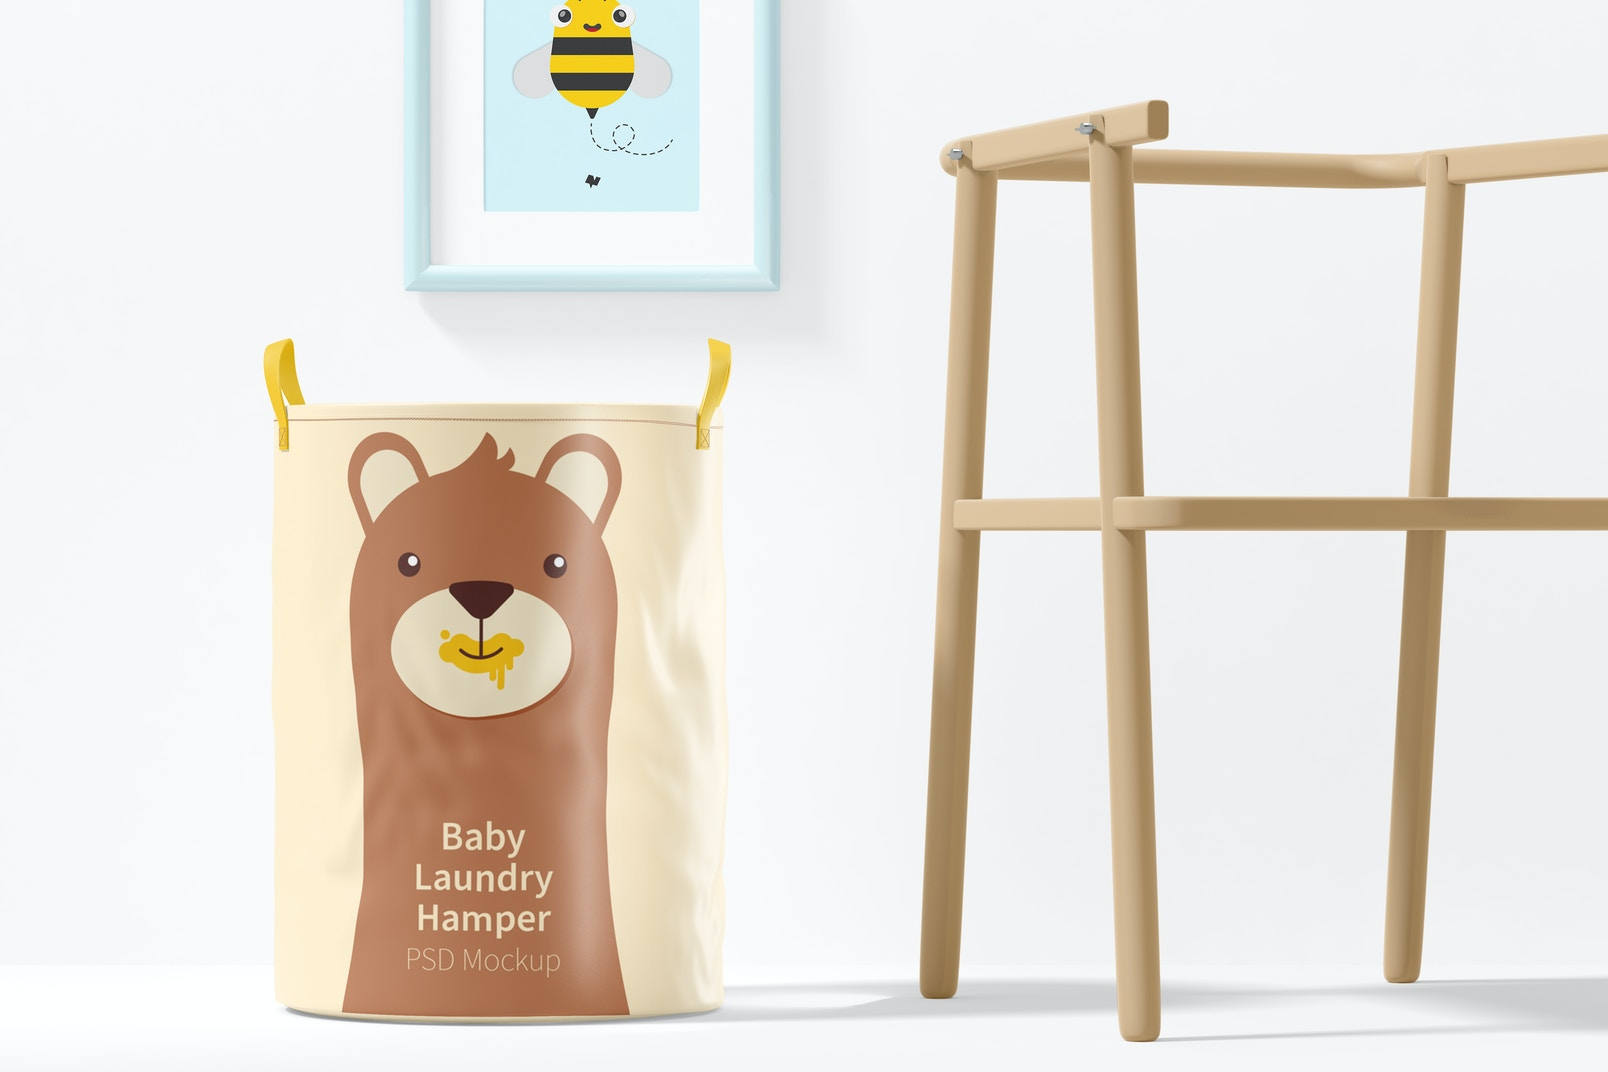 Baby Laundry Hamper Mockup, Front View